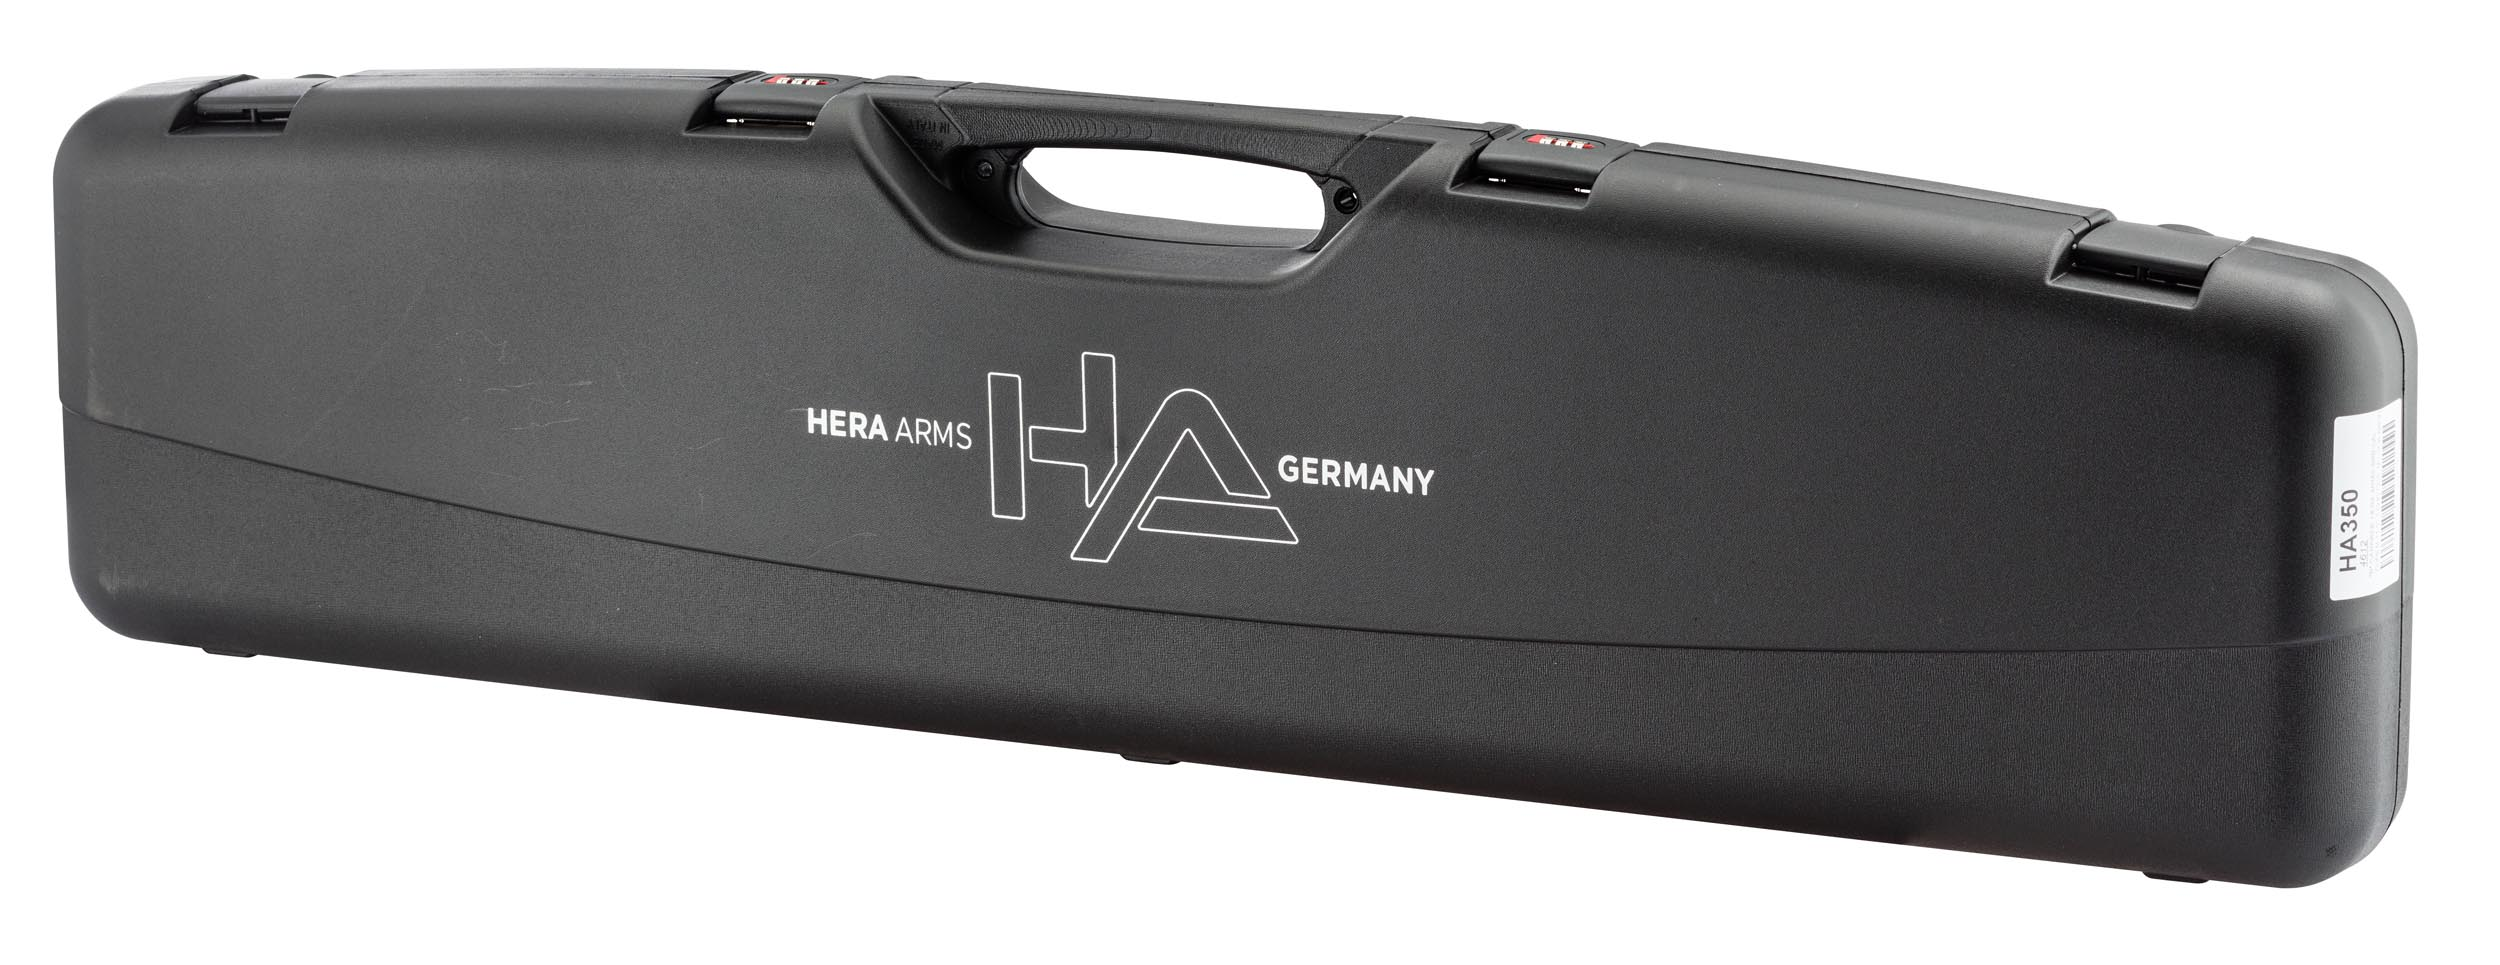 HA325-12 AR15 HERA ARMS 15th LS060/US100  223REM M-LOCK - HA325